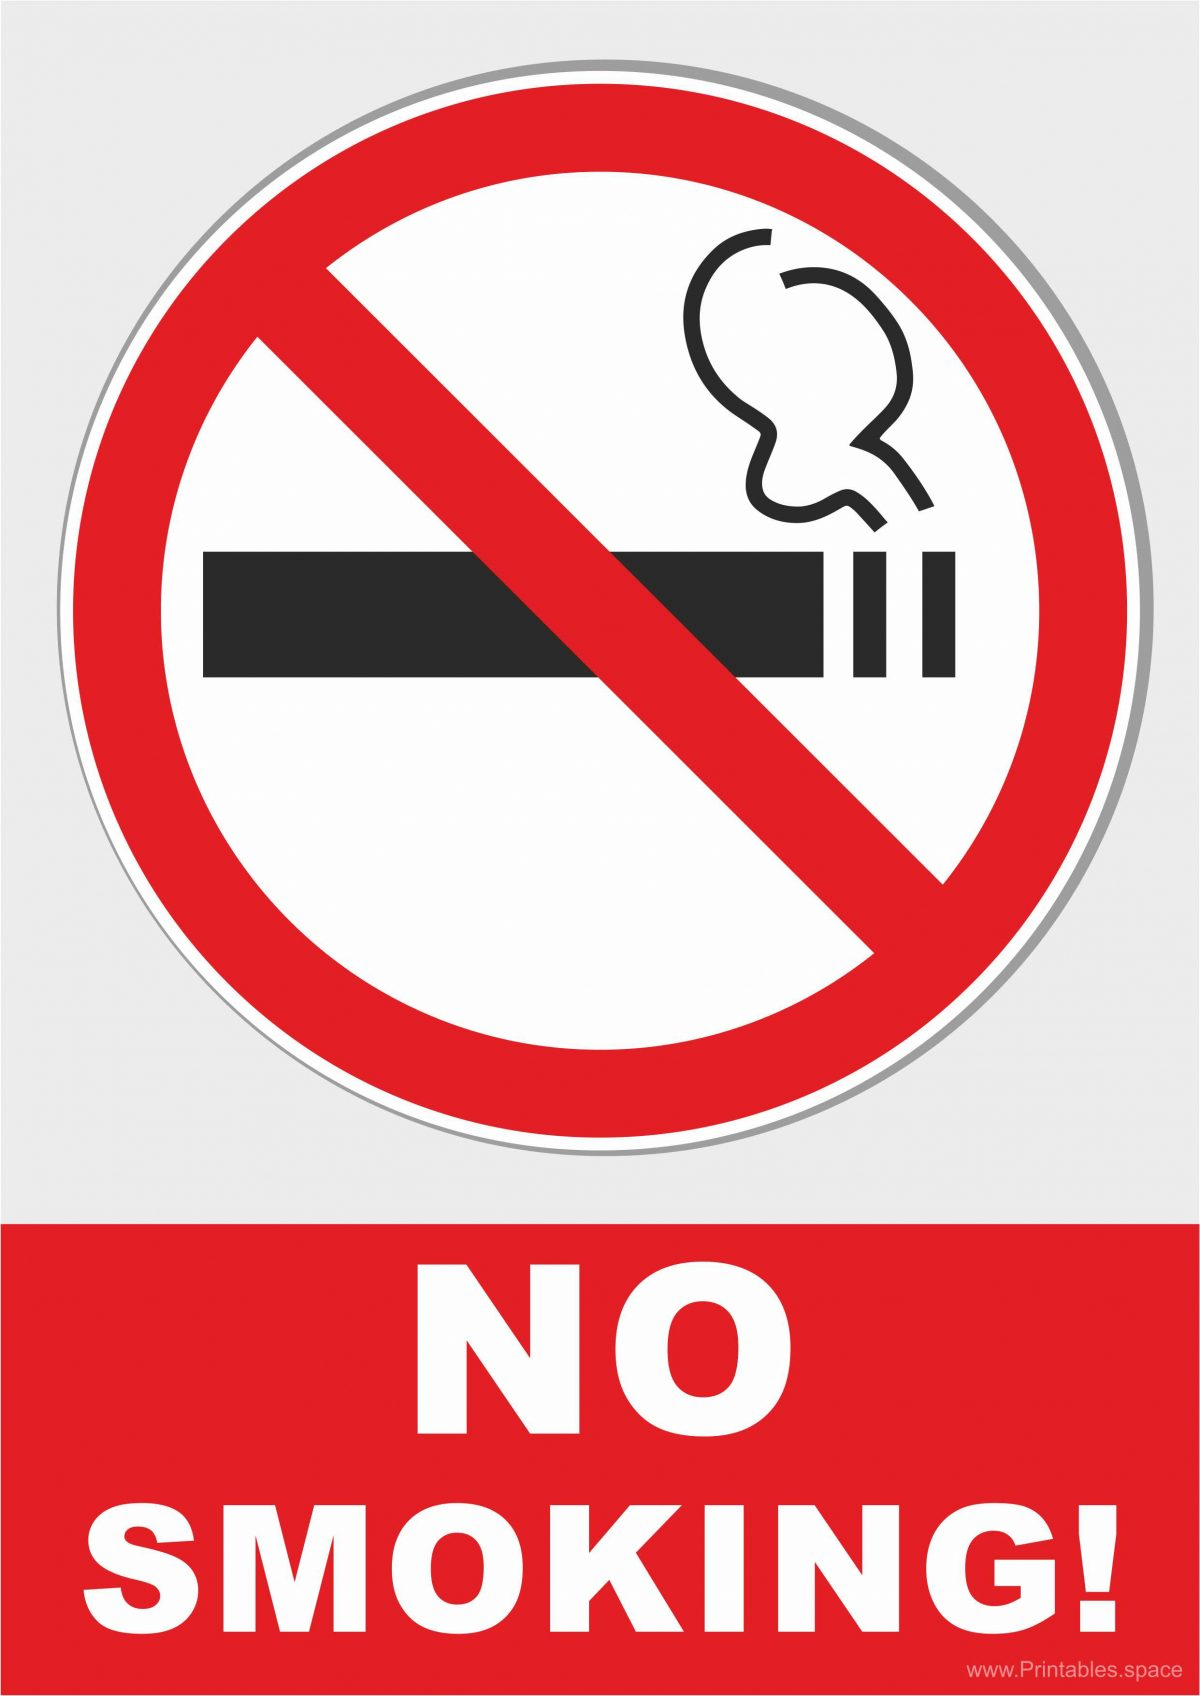 No smoking - Prohibiting Sign